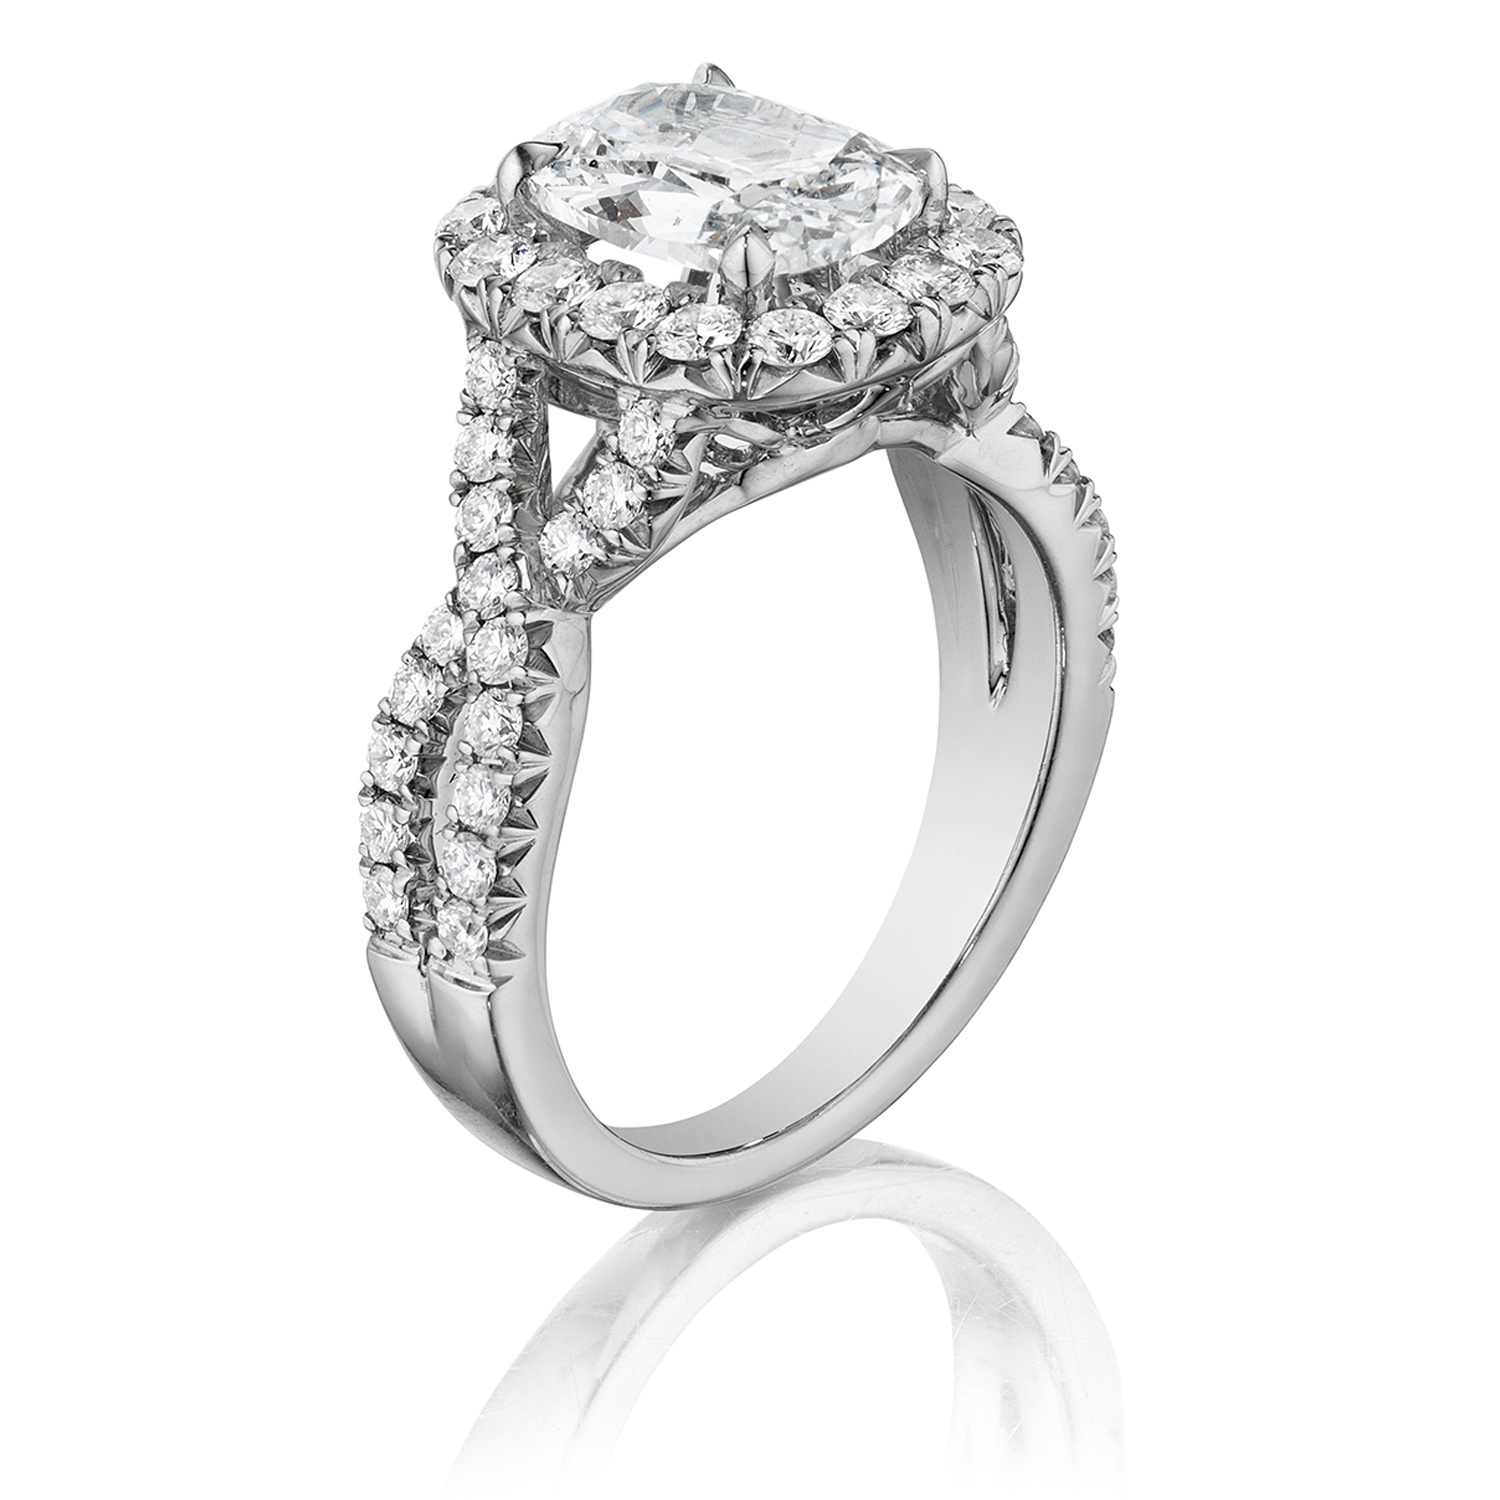 Henri Daussi AW Cushion Halo Interlaced Shank Diamond Engagement Ring Alternative View 1